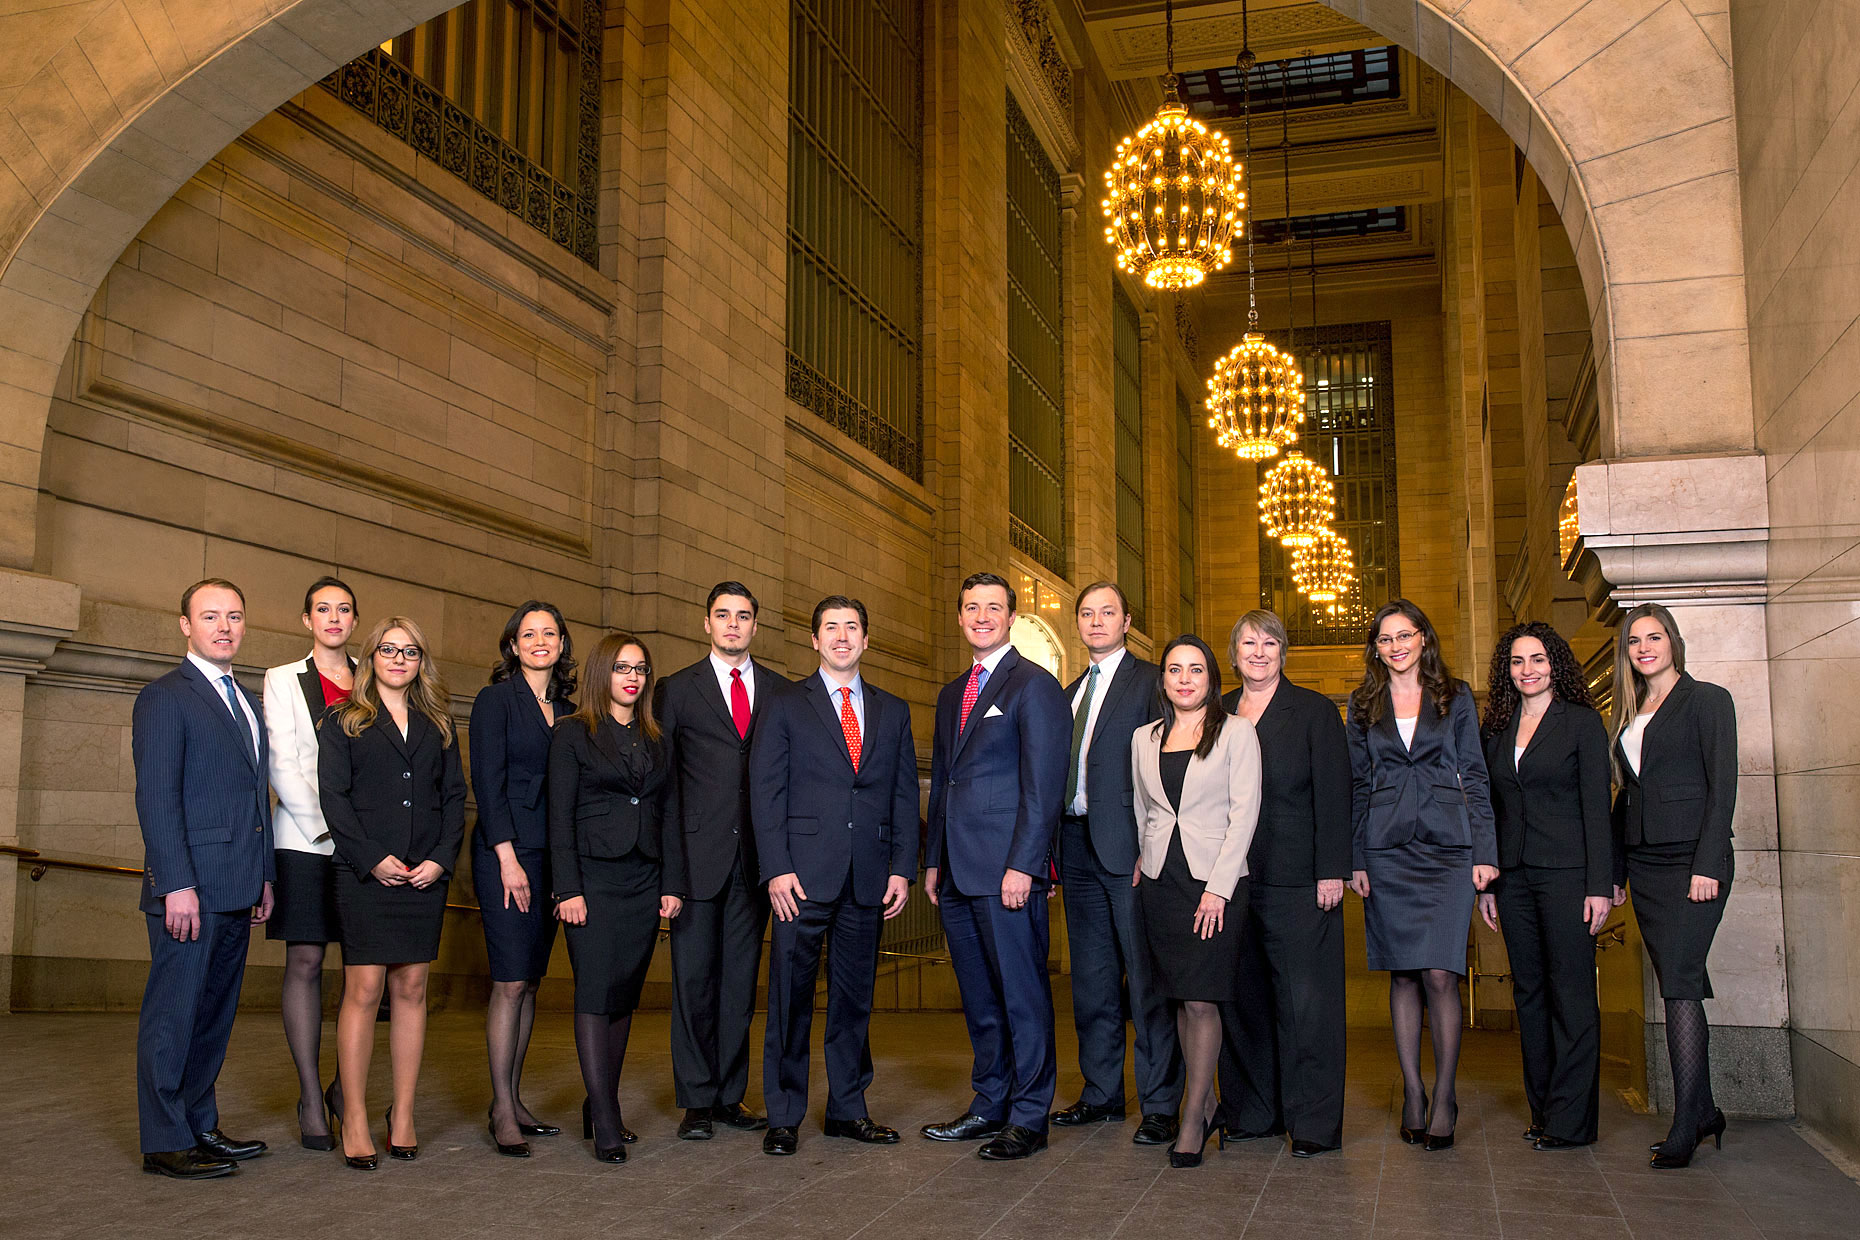 Corporate_Teamshot_GrandCentral